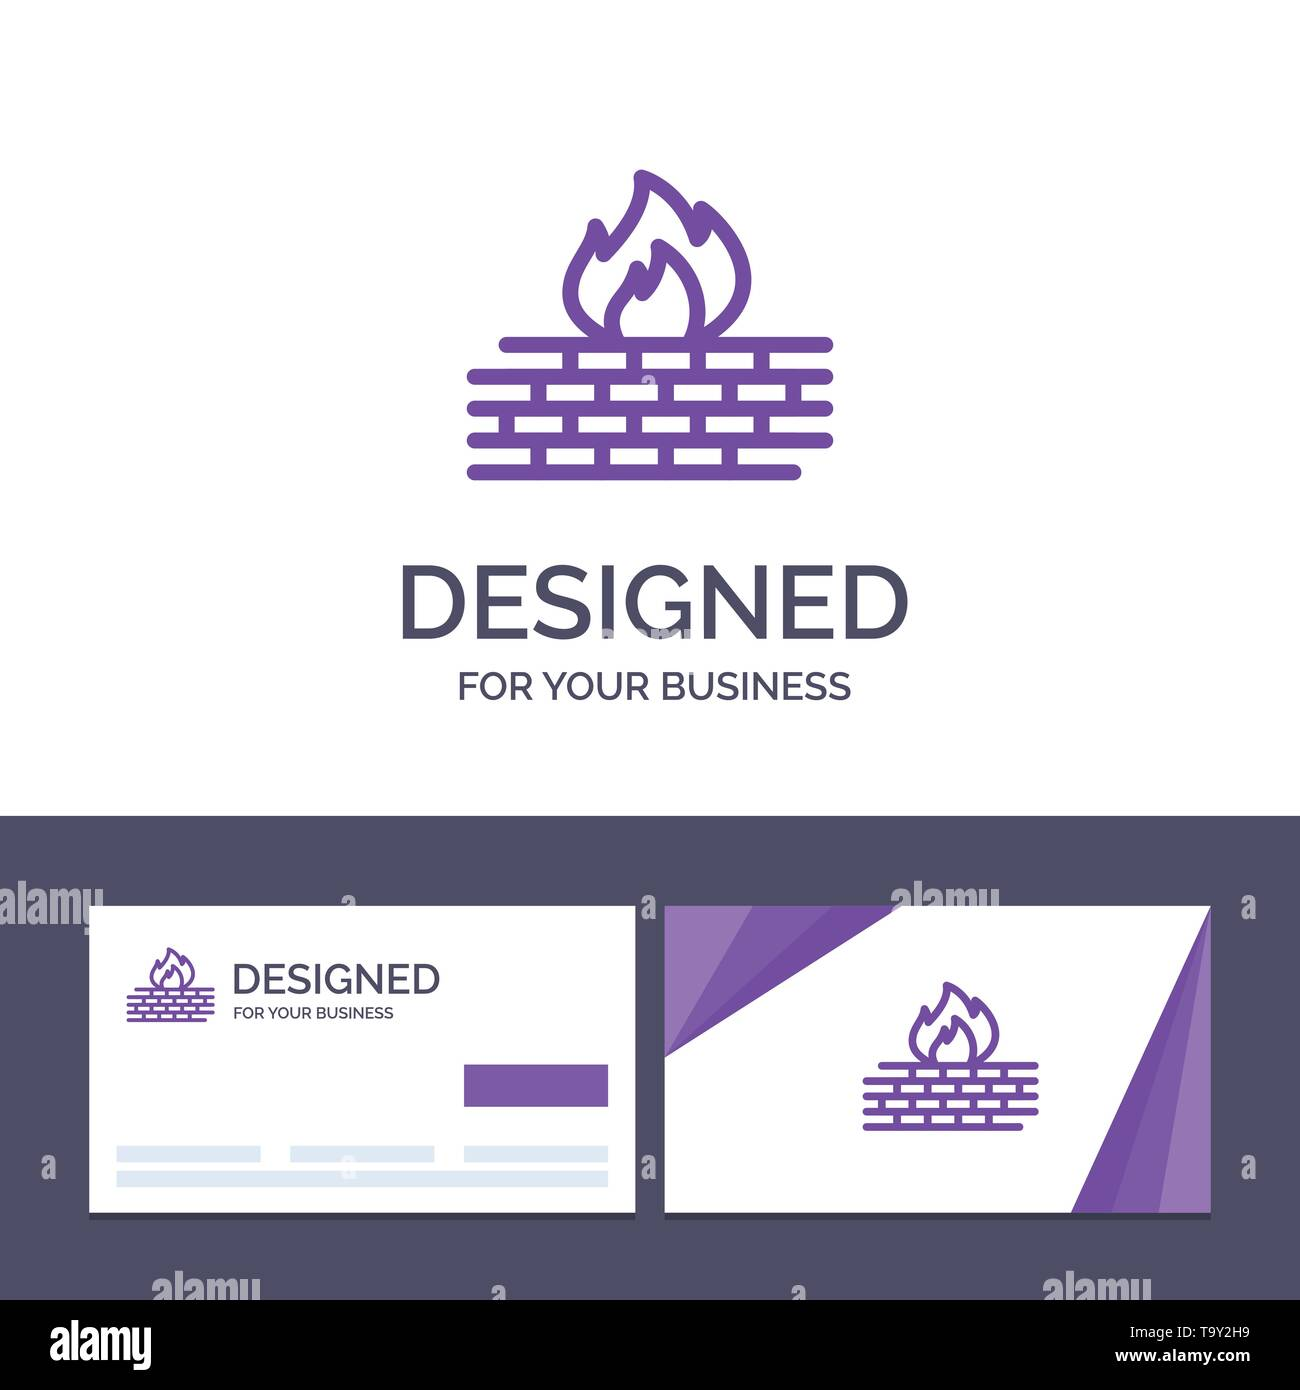 Creative Business Card and Logo template Antivirus, Computer, Firewall, Network, Security Vector Illustration - Stock Image